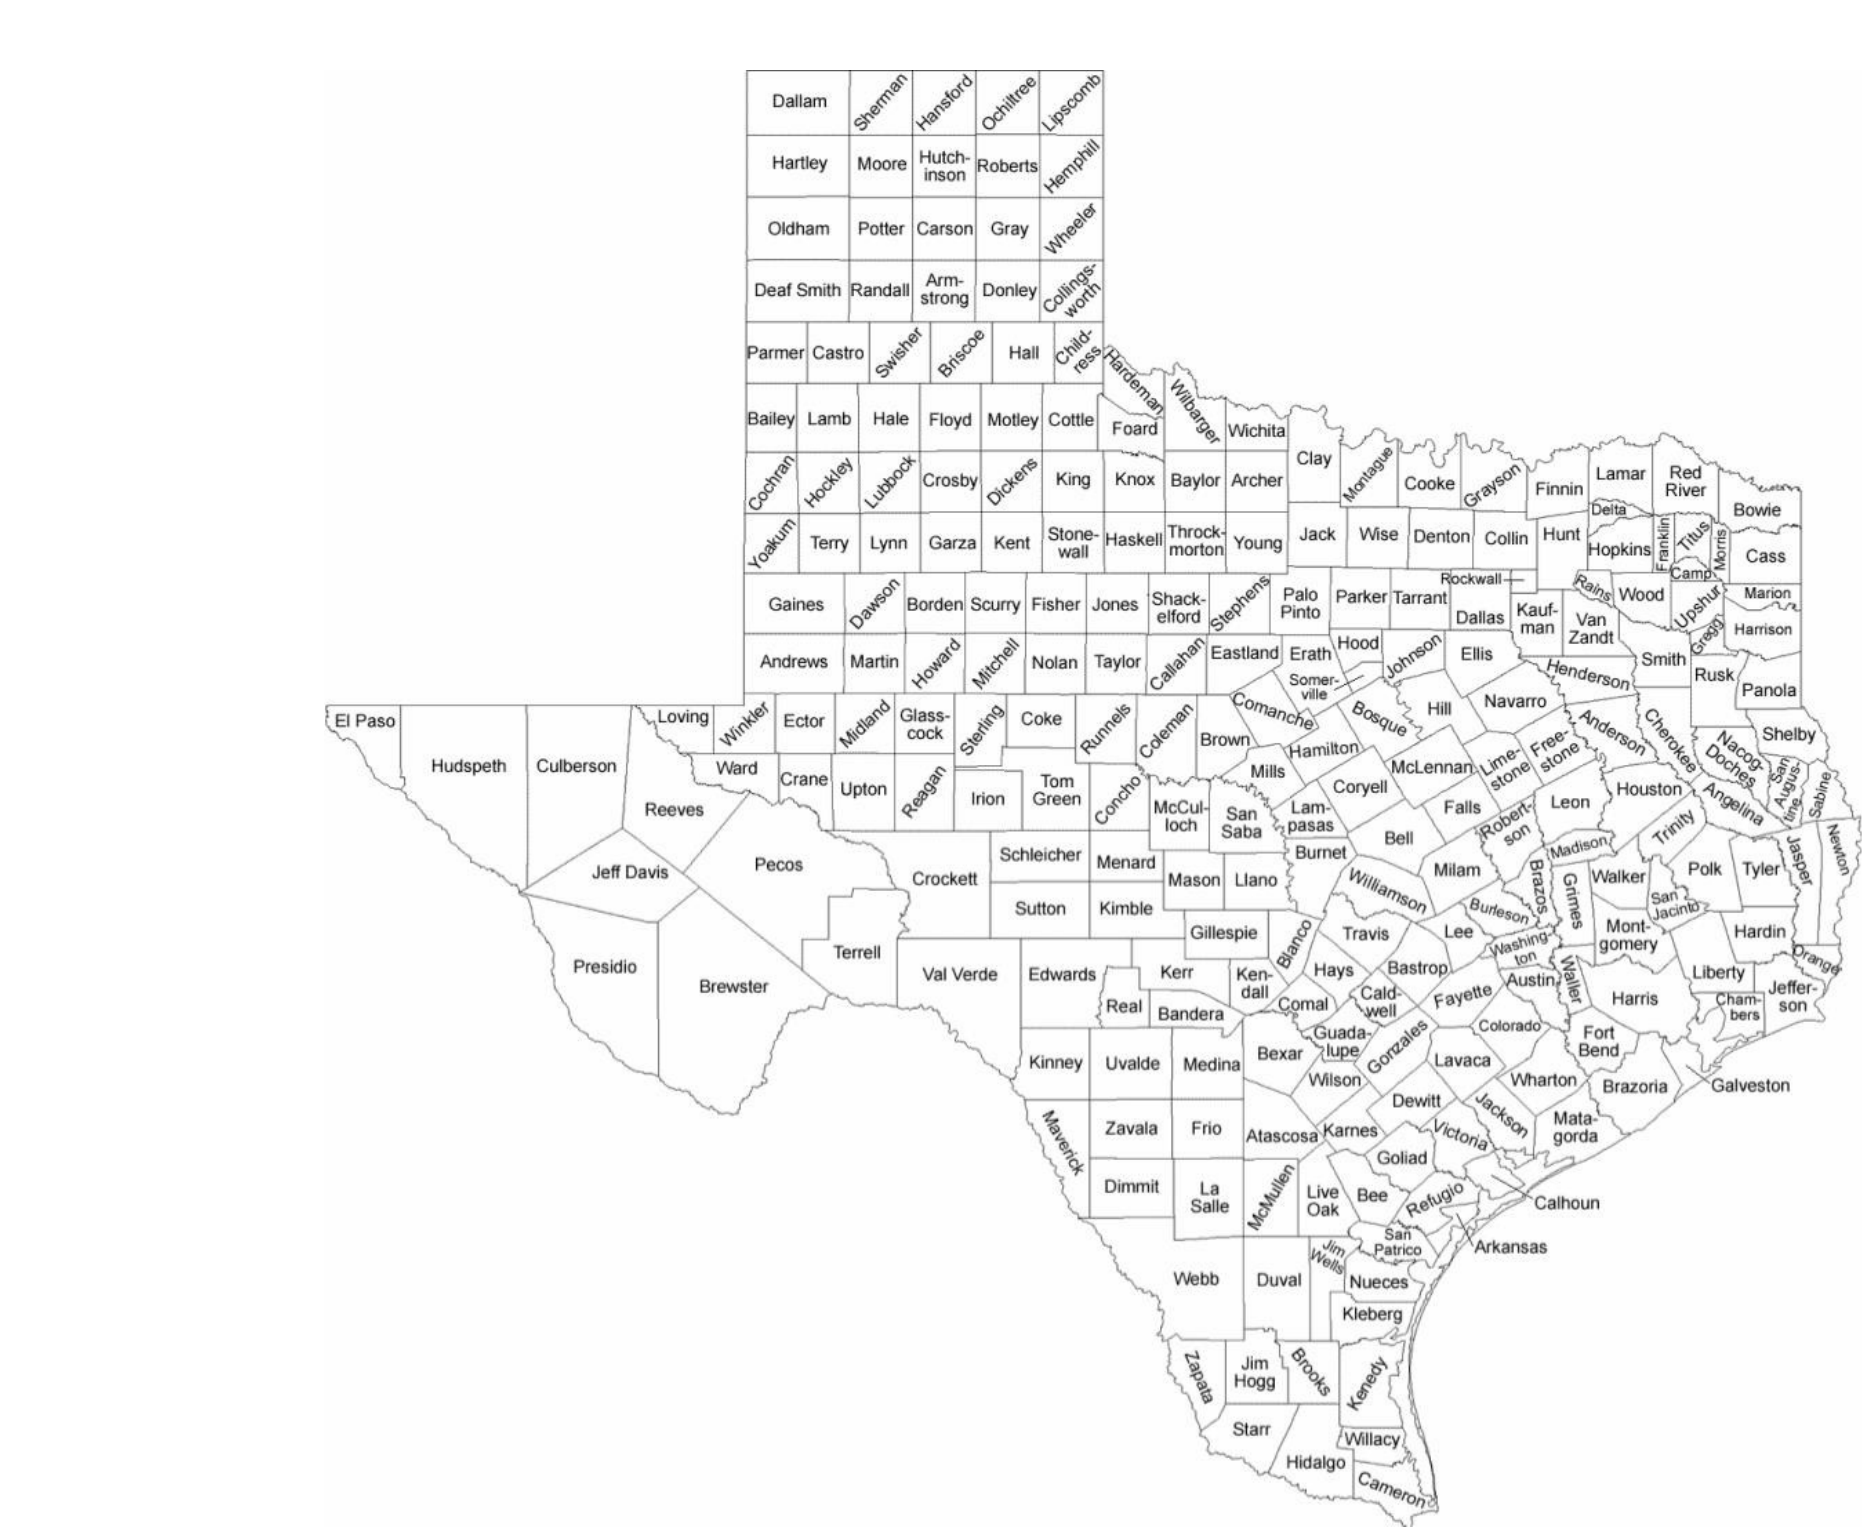 Texas County Map With County Names Free Download